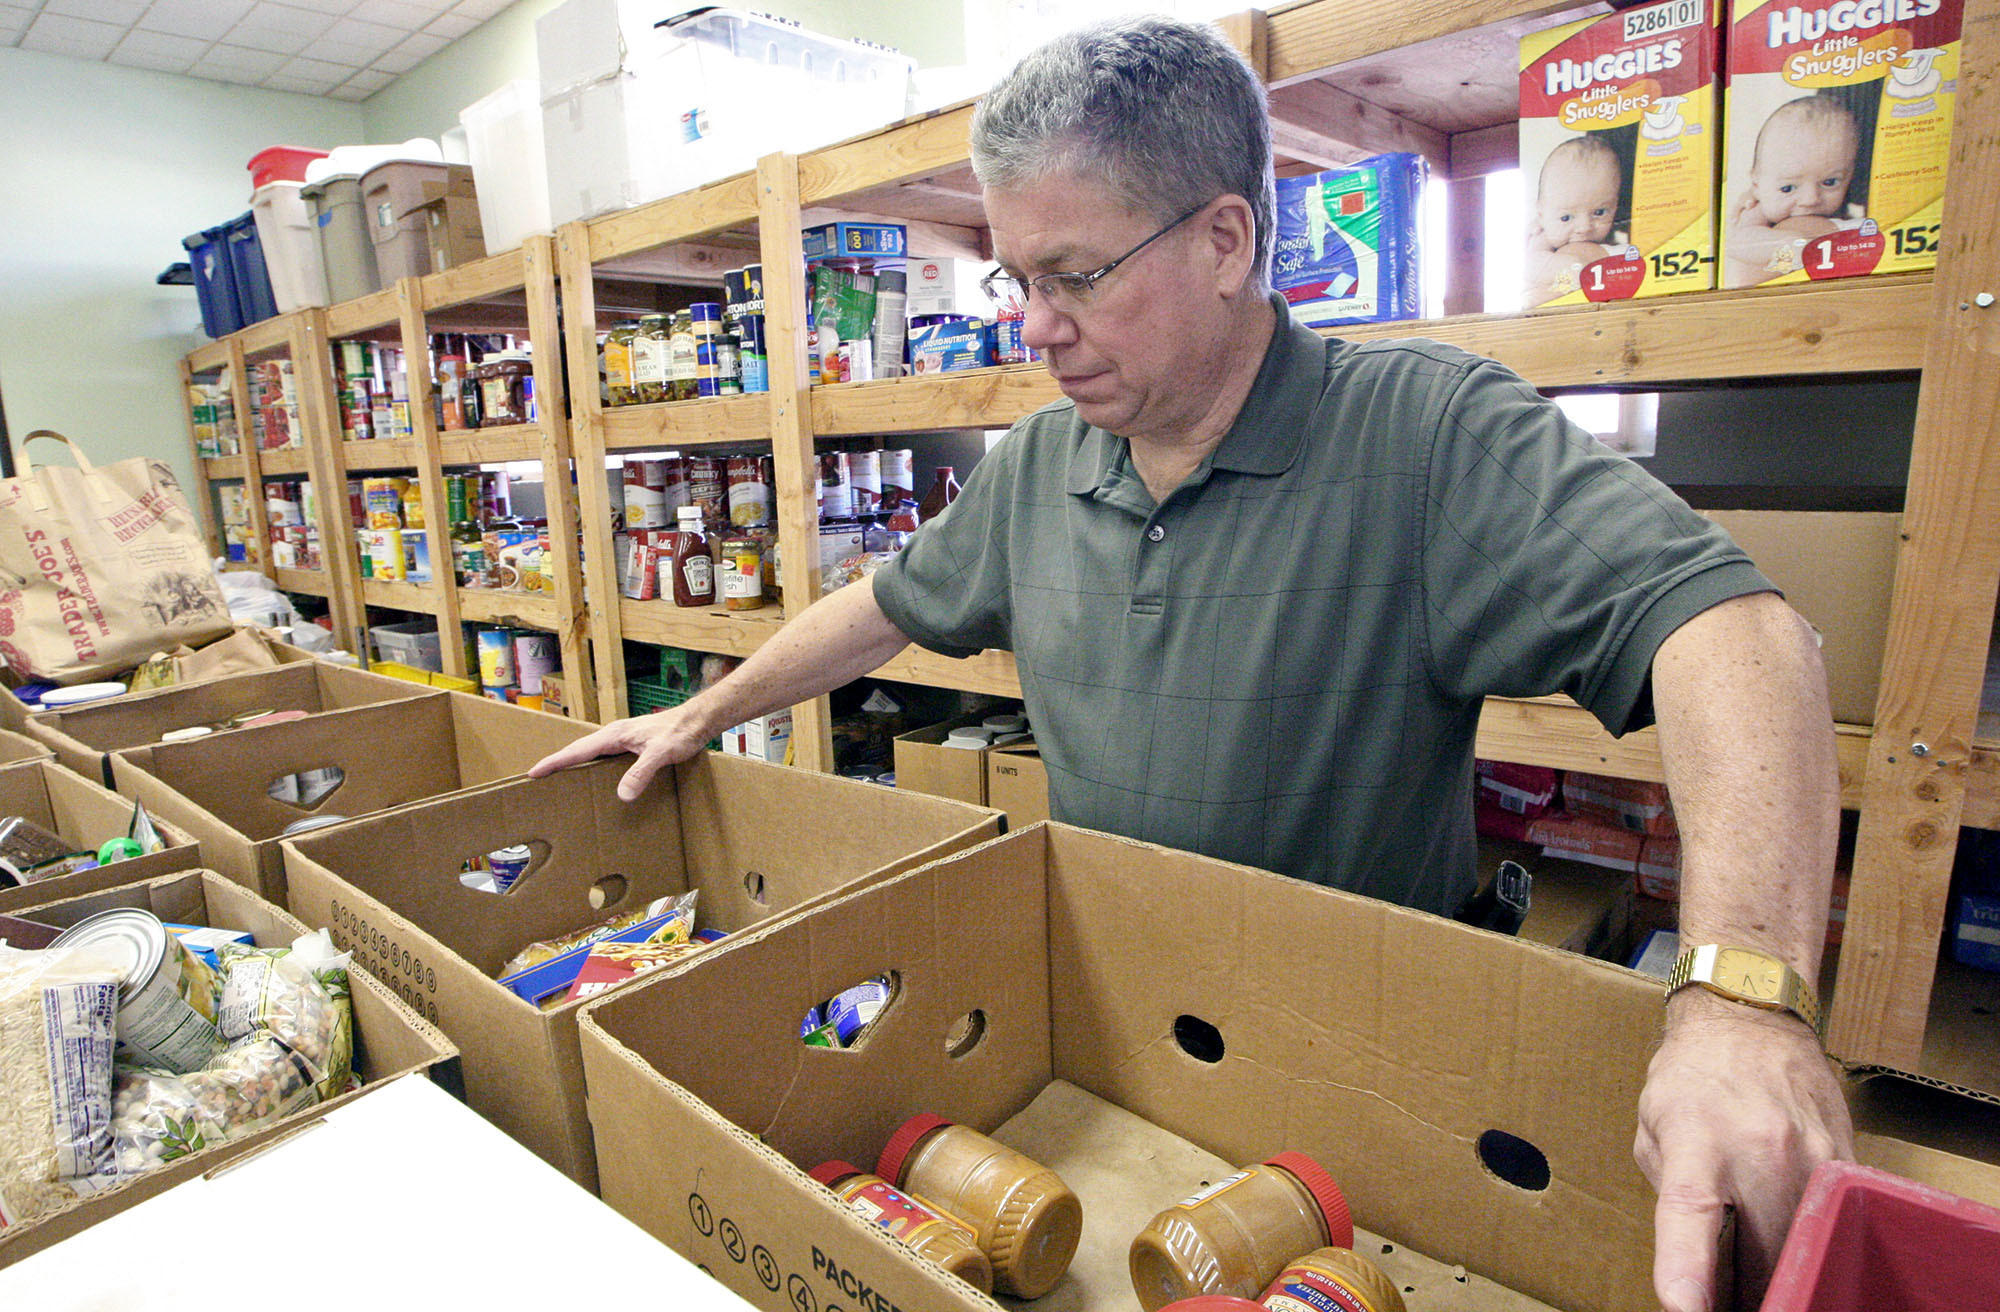 Rick White with the Salvation Army looks over the group's food stocks for their food assistance program on Wednesday, Feb. 12, 2014.